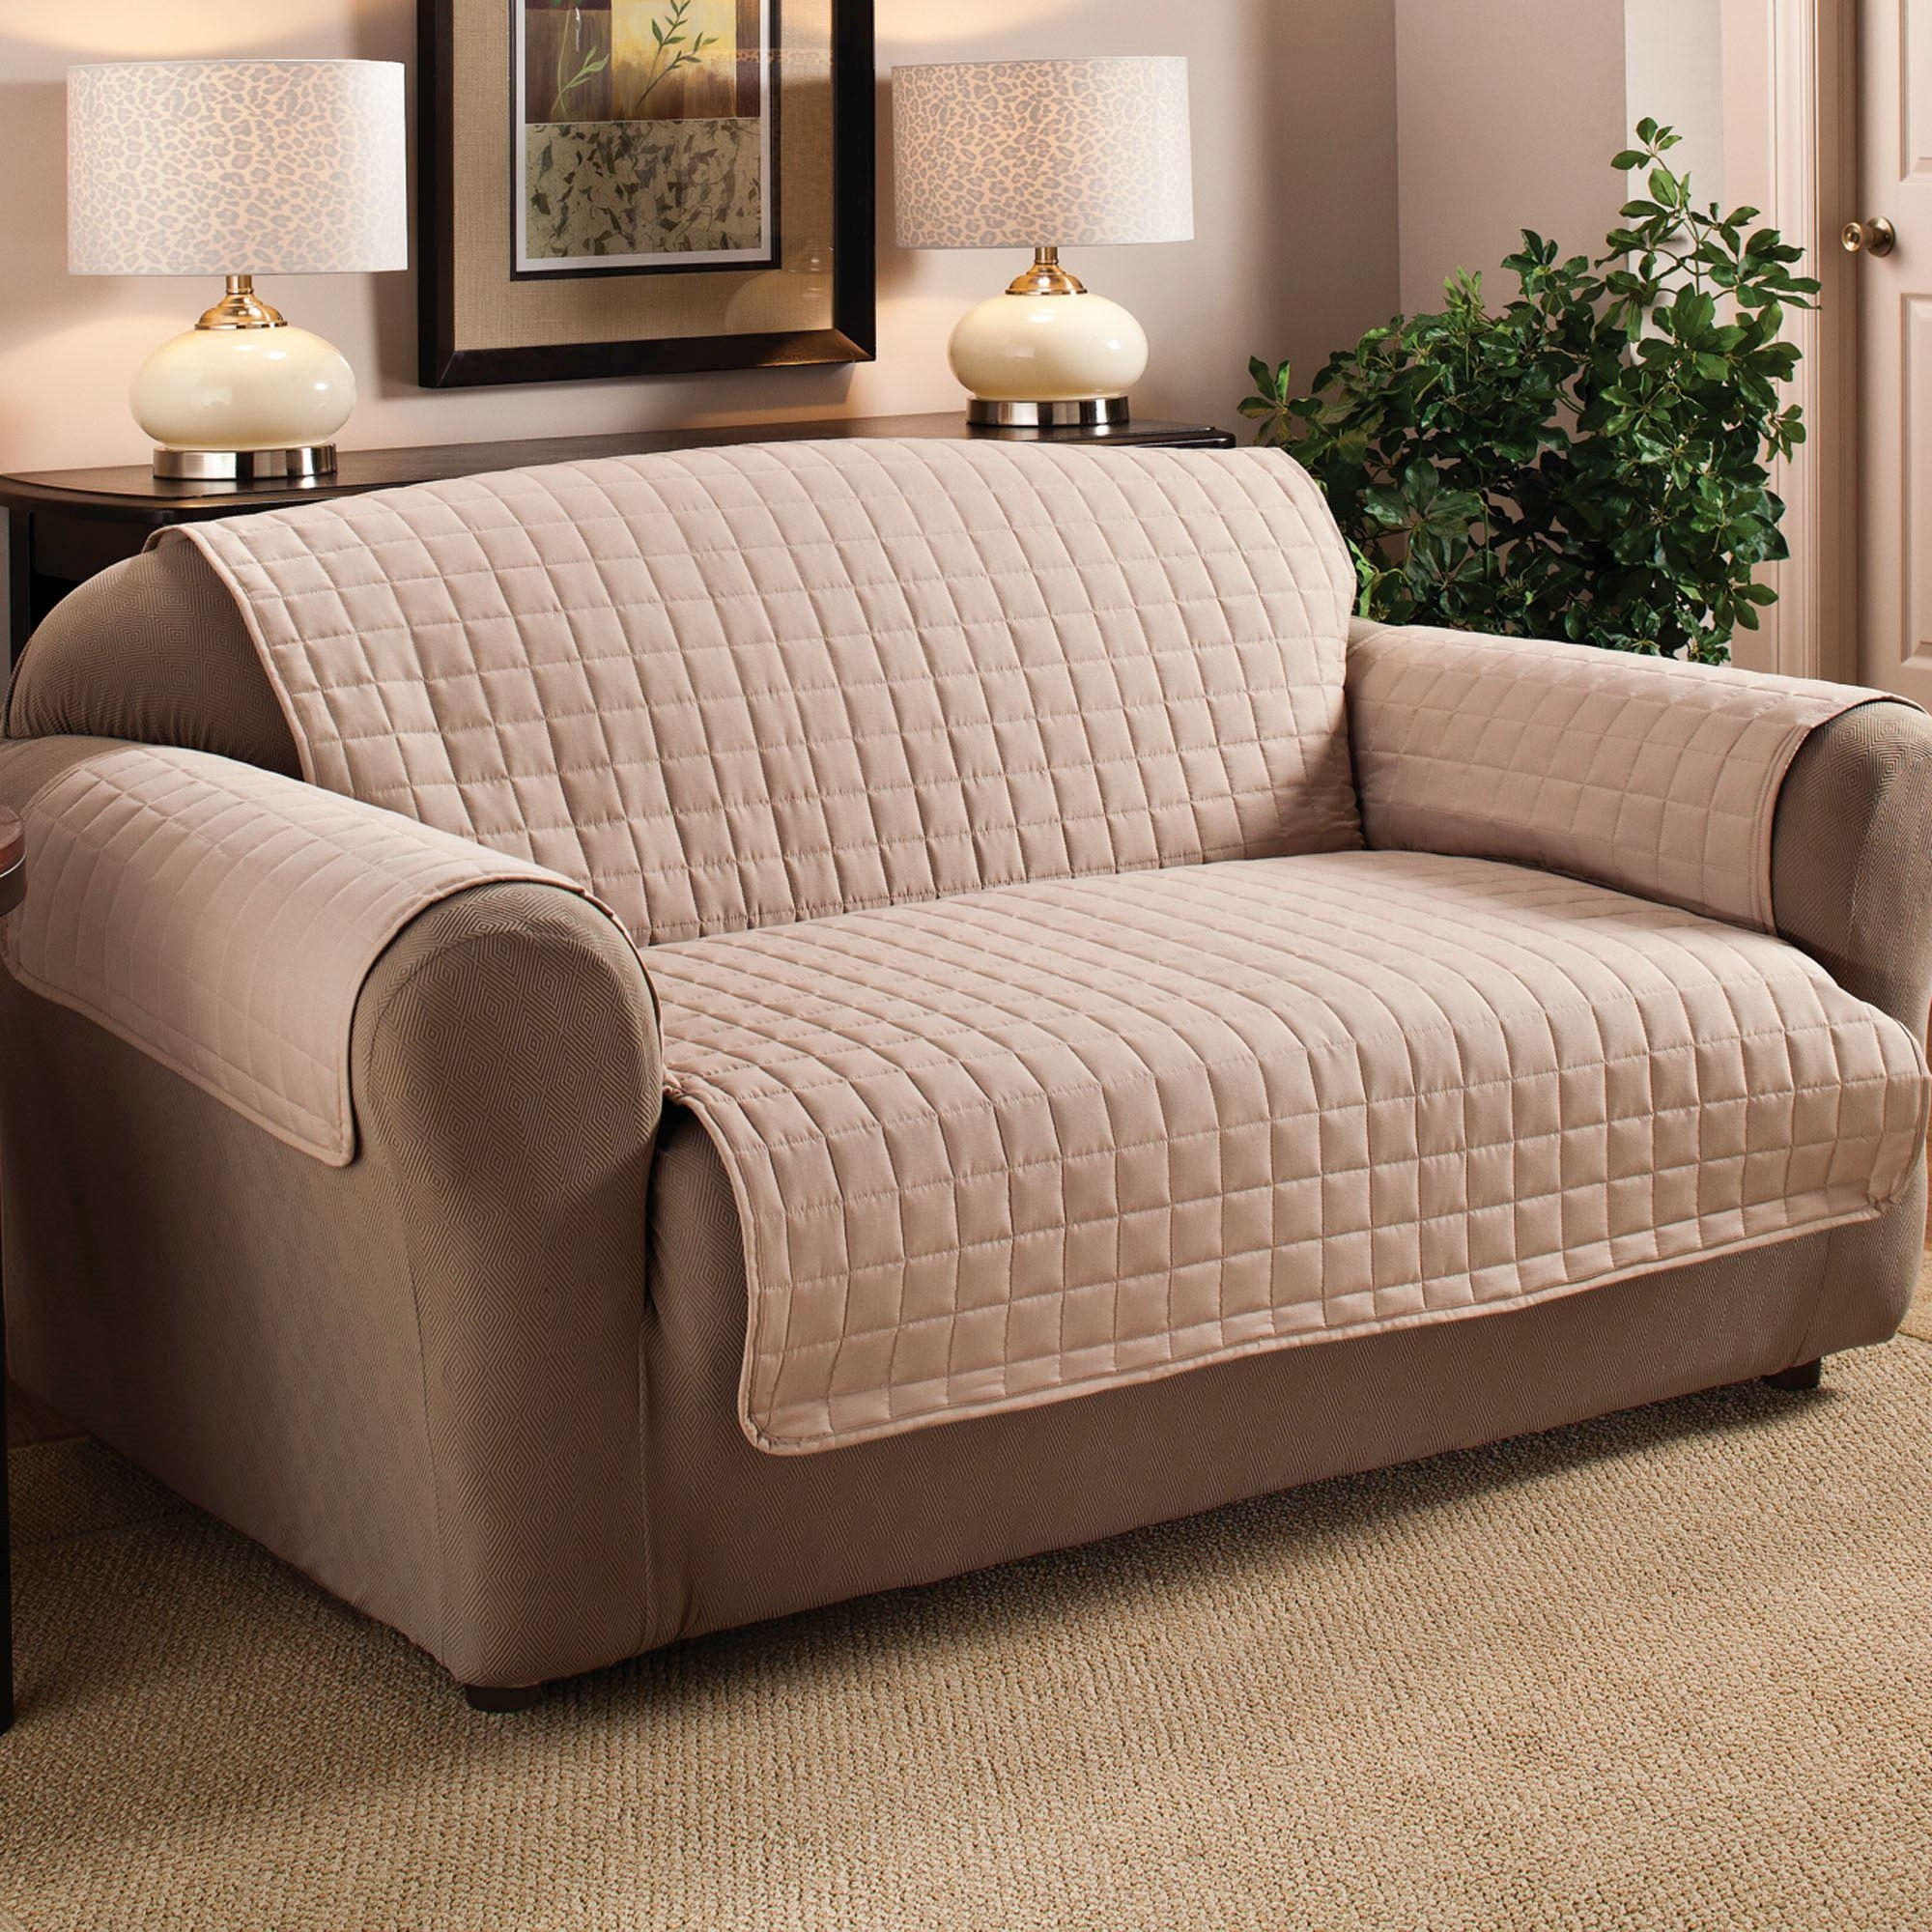 Sofas Center : Pet Cover For Sofa Extra Large Covers Sofas Best With Regard To Covers For Sofas And Chairs (View 13 of 20)